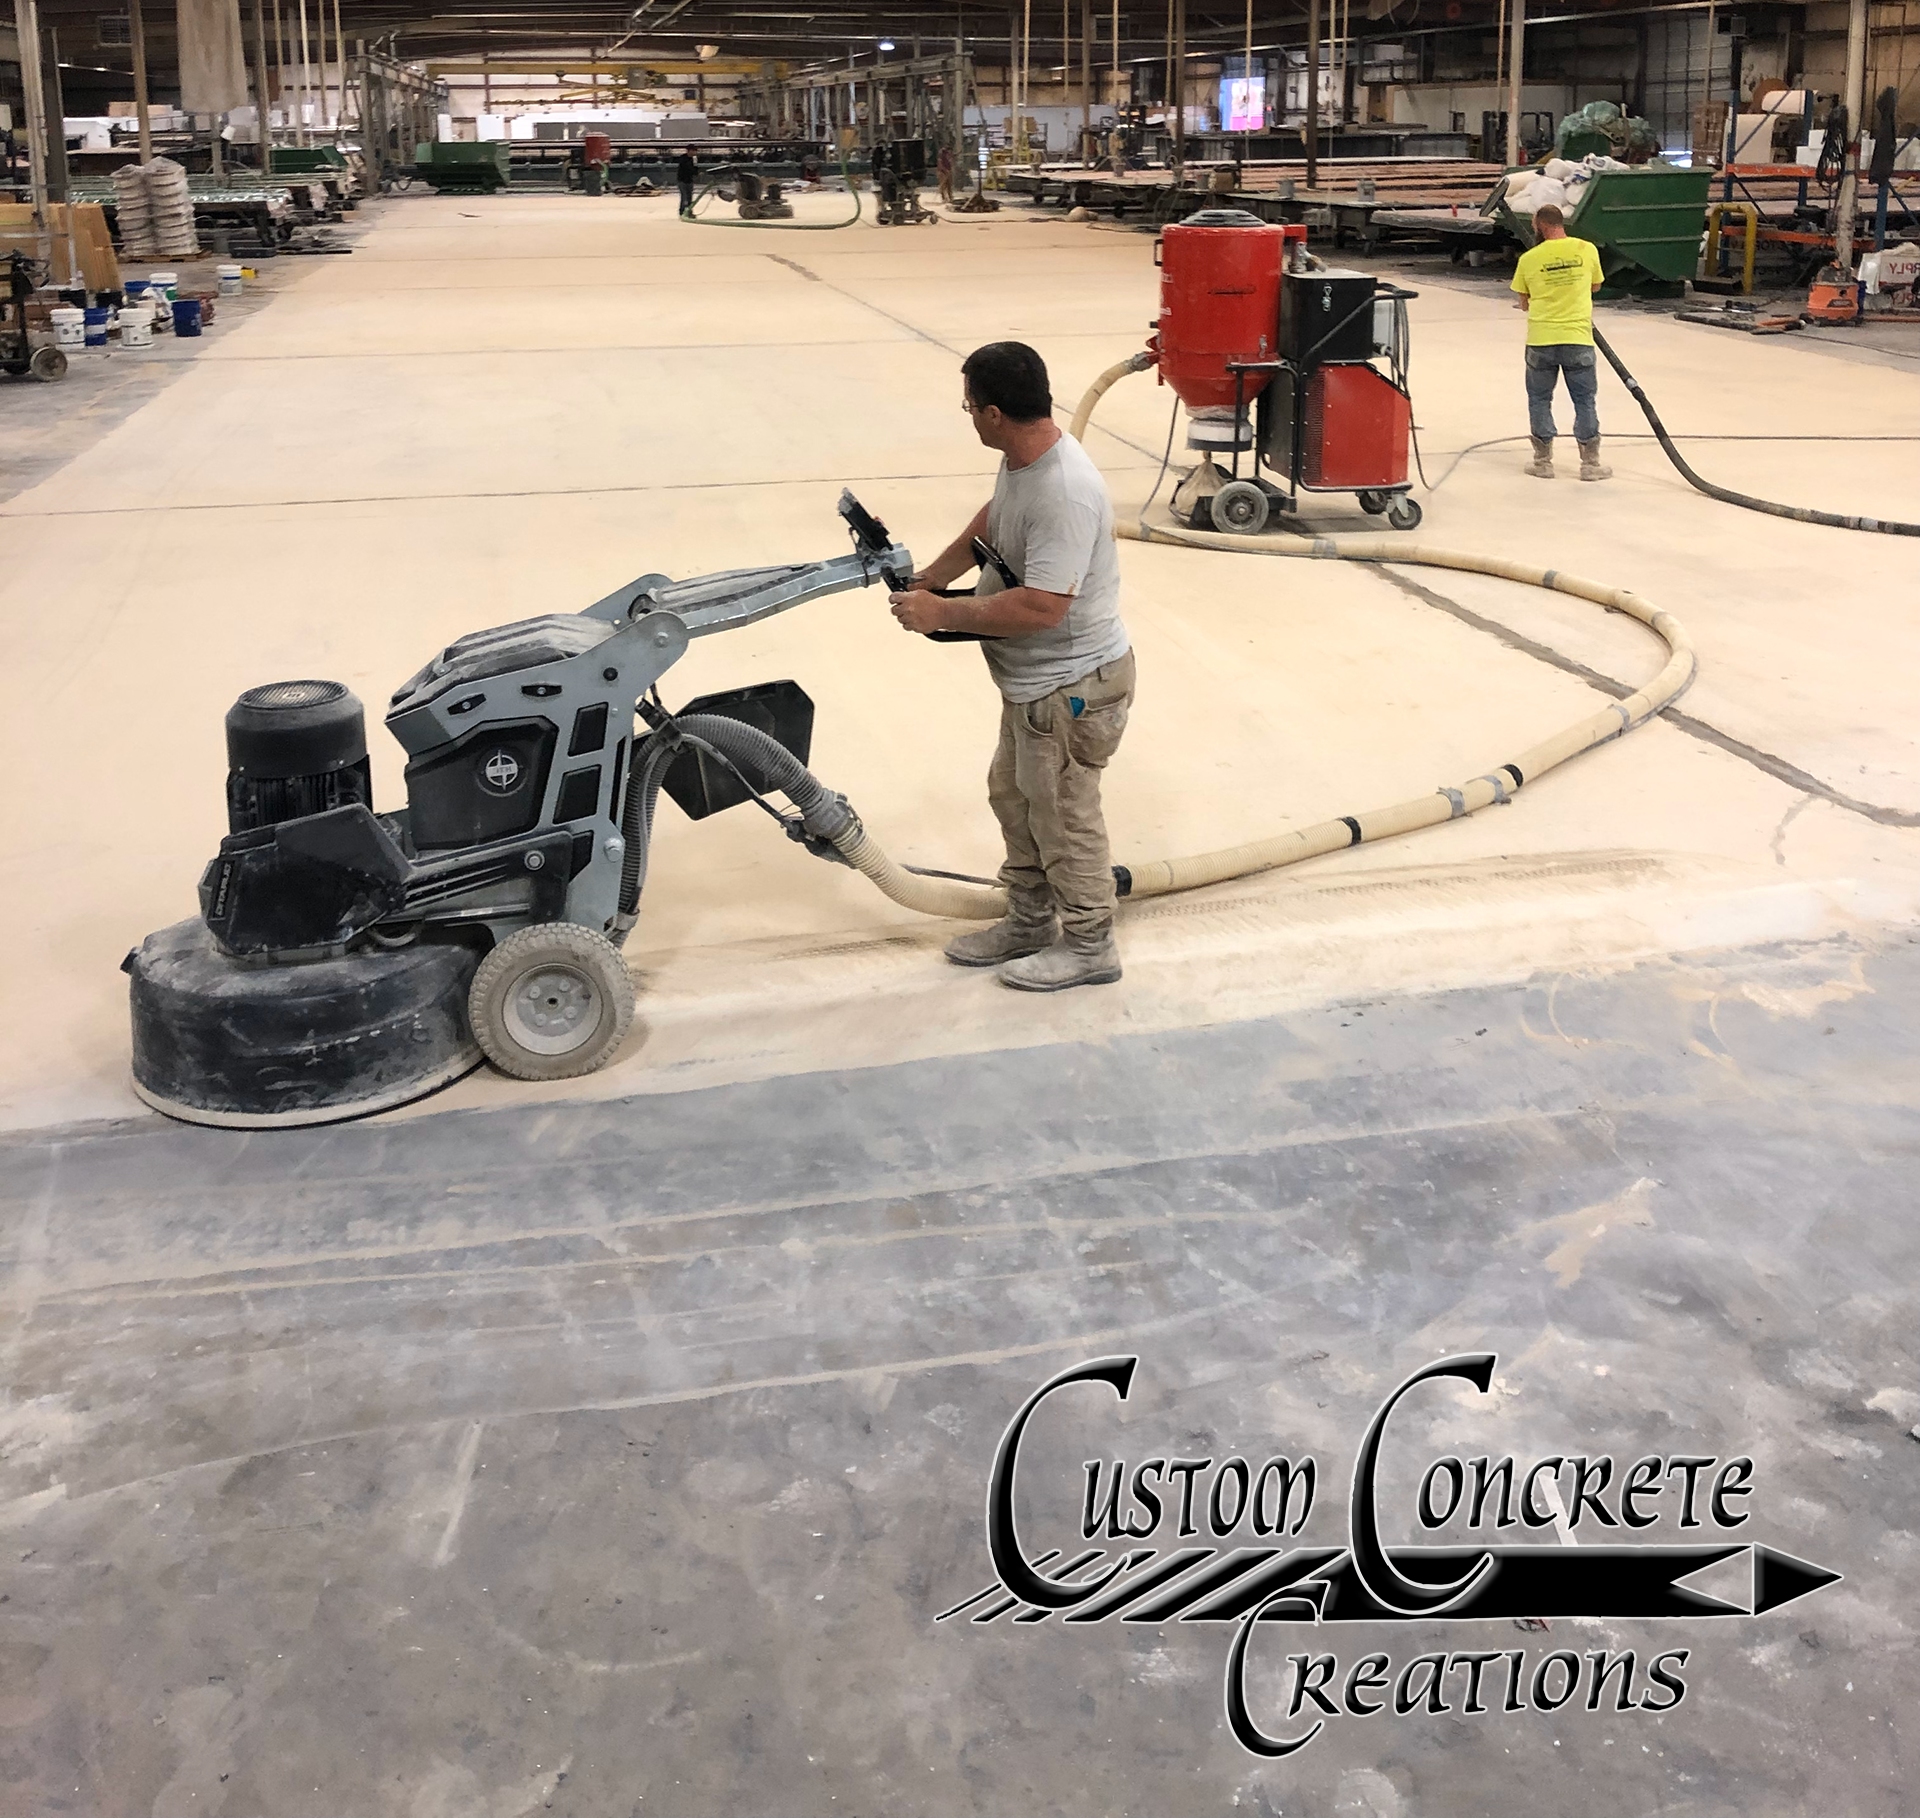 Commercial and Industrial concrete refinishing